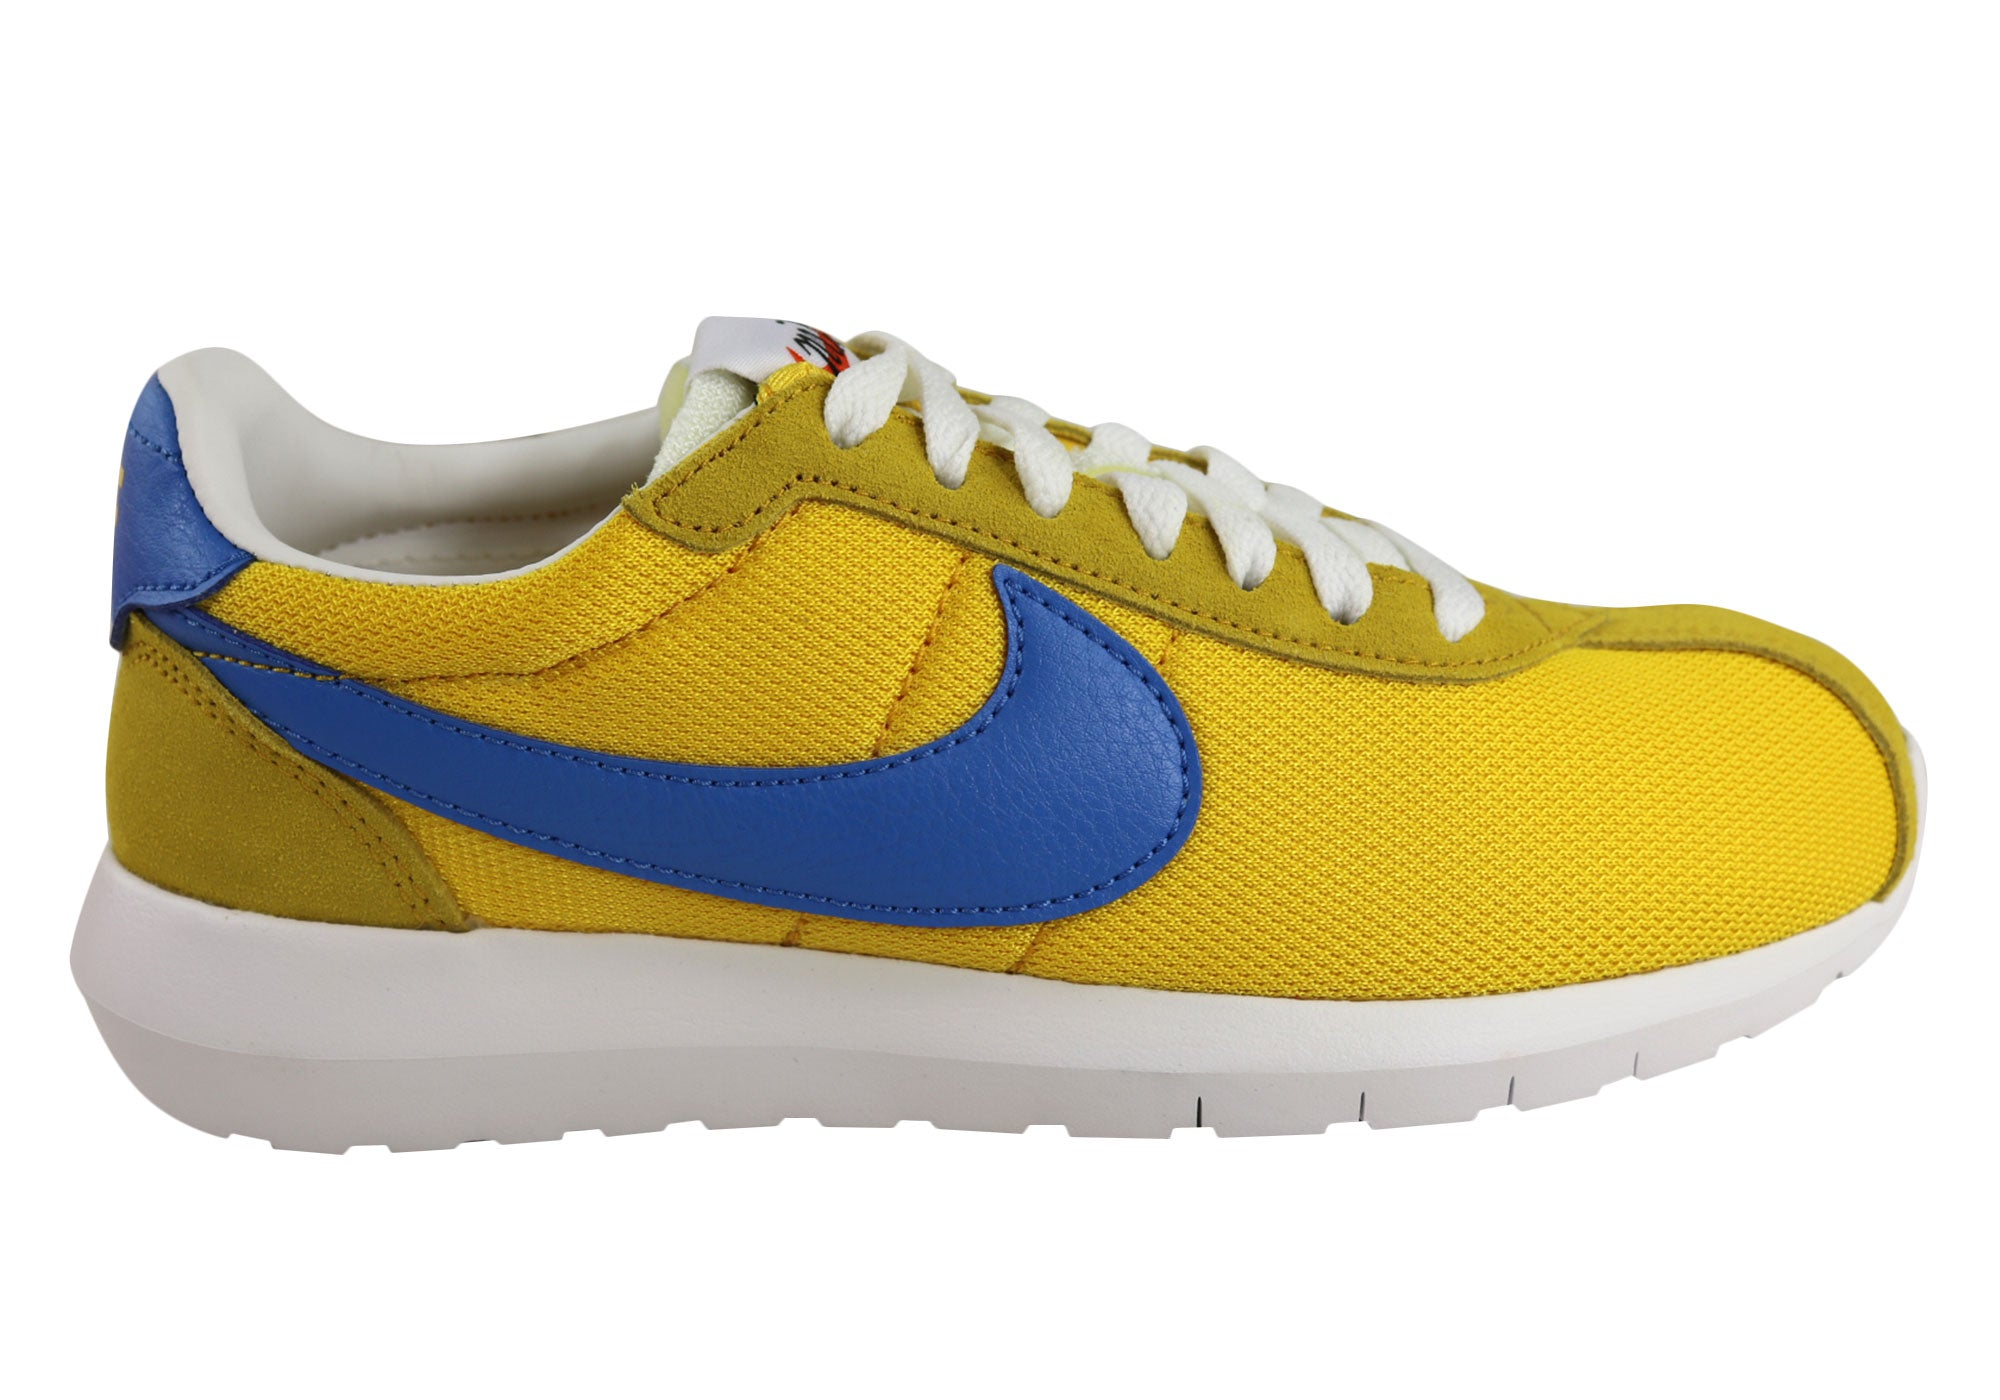 new product 6a565 6a09c Home Nike W Roshe LD-1000 QS Womens Shoes. Yellow  ...